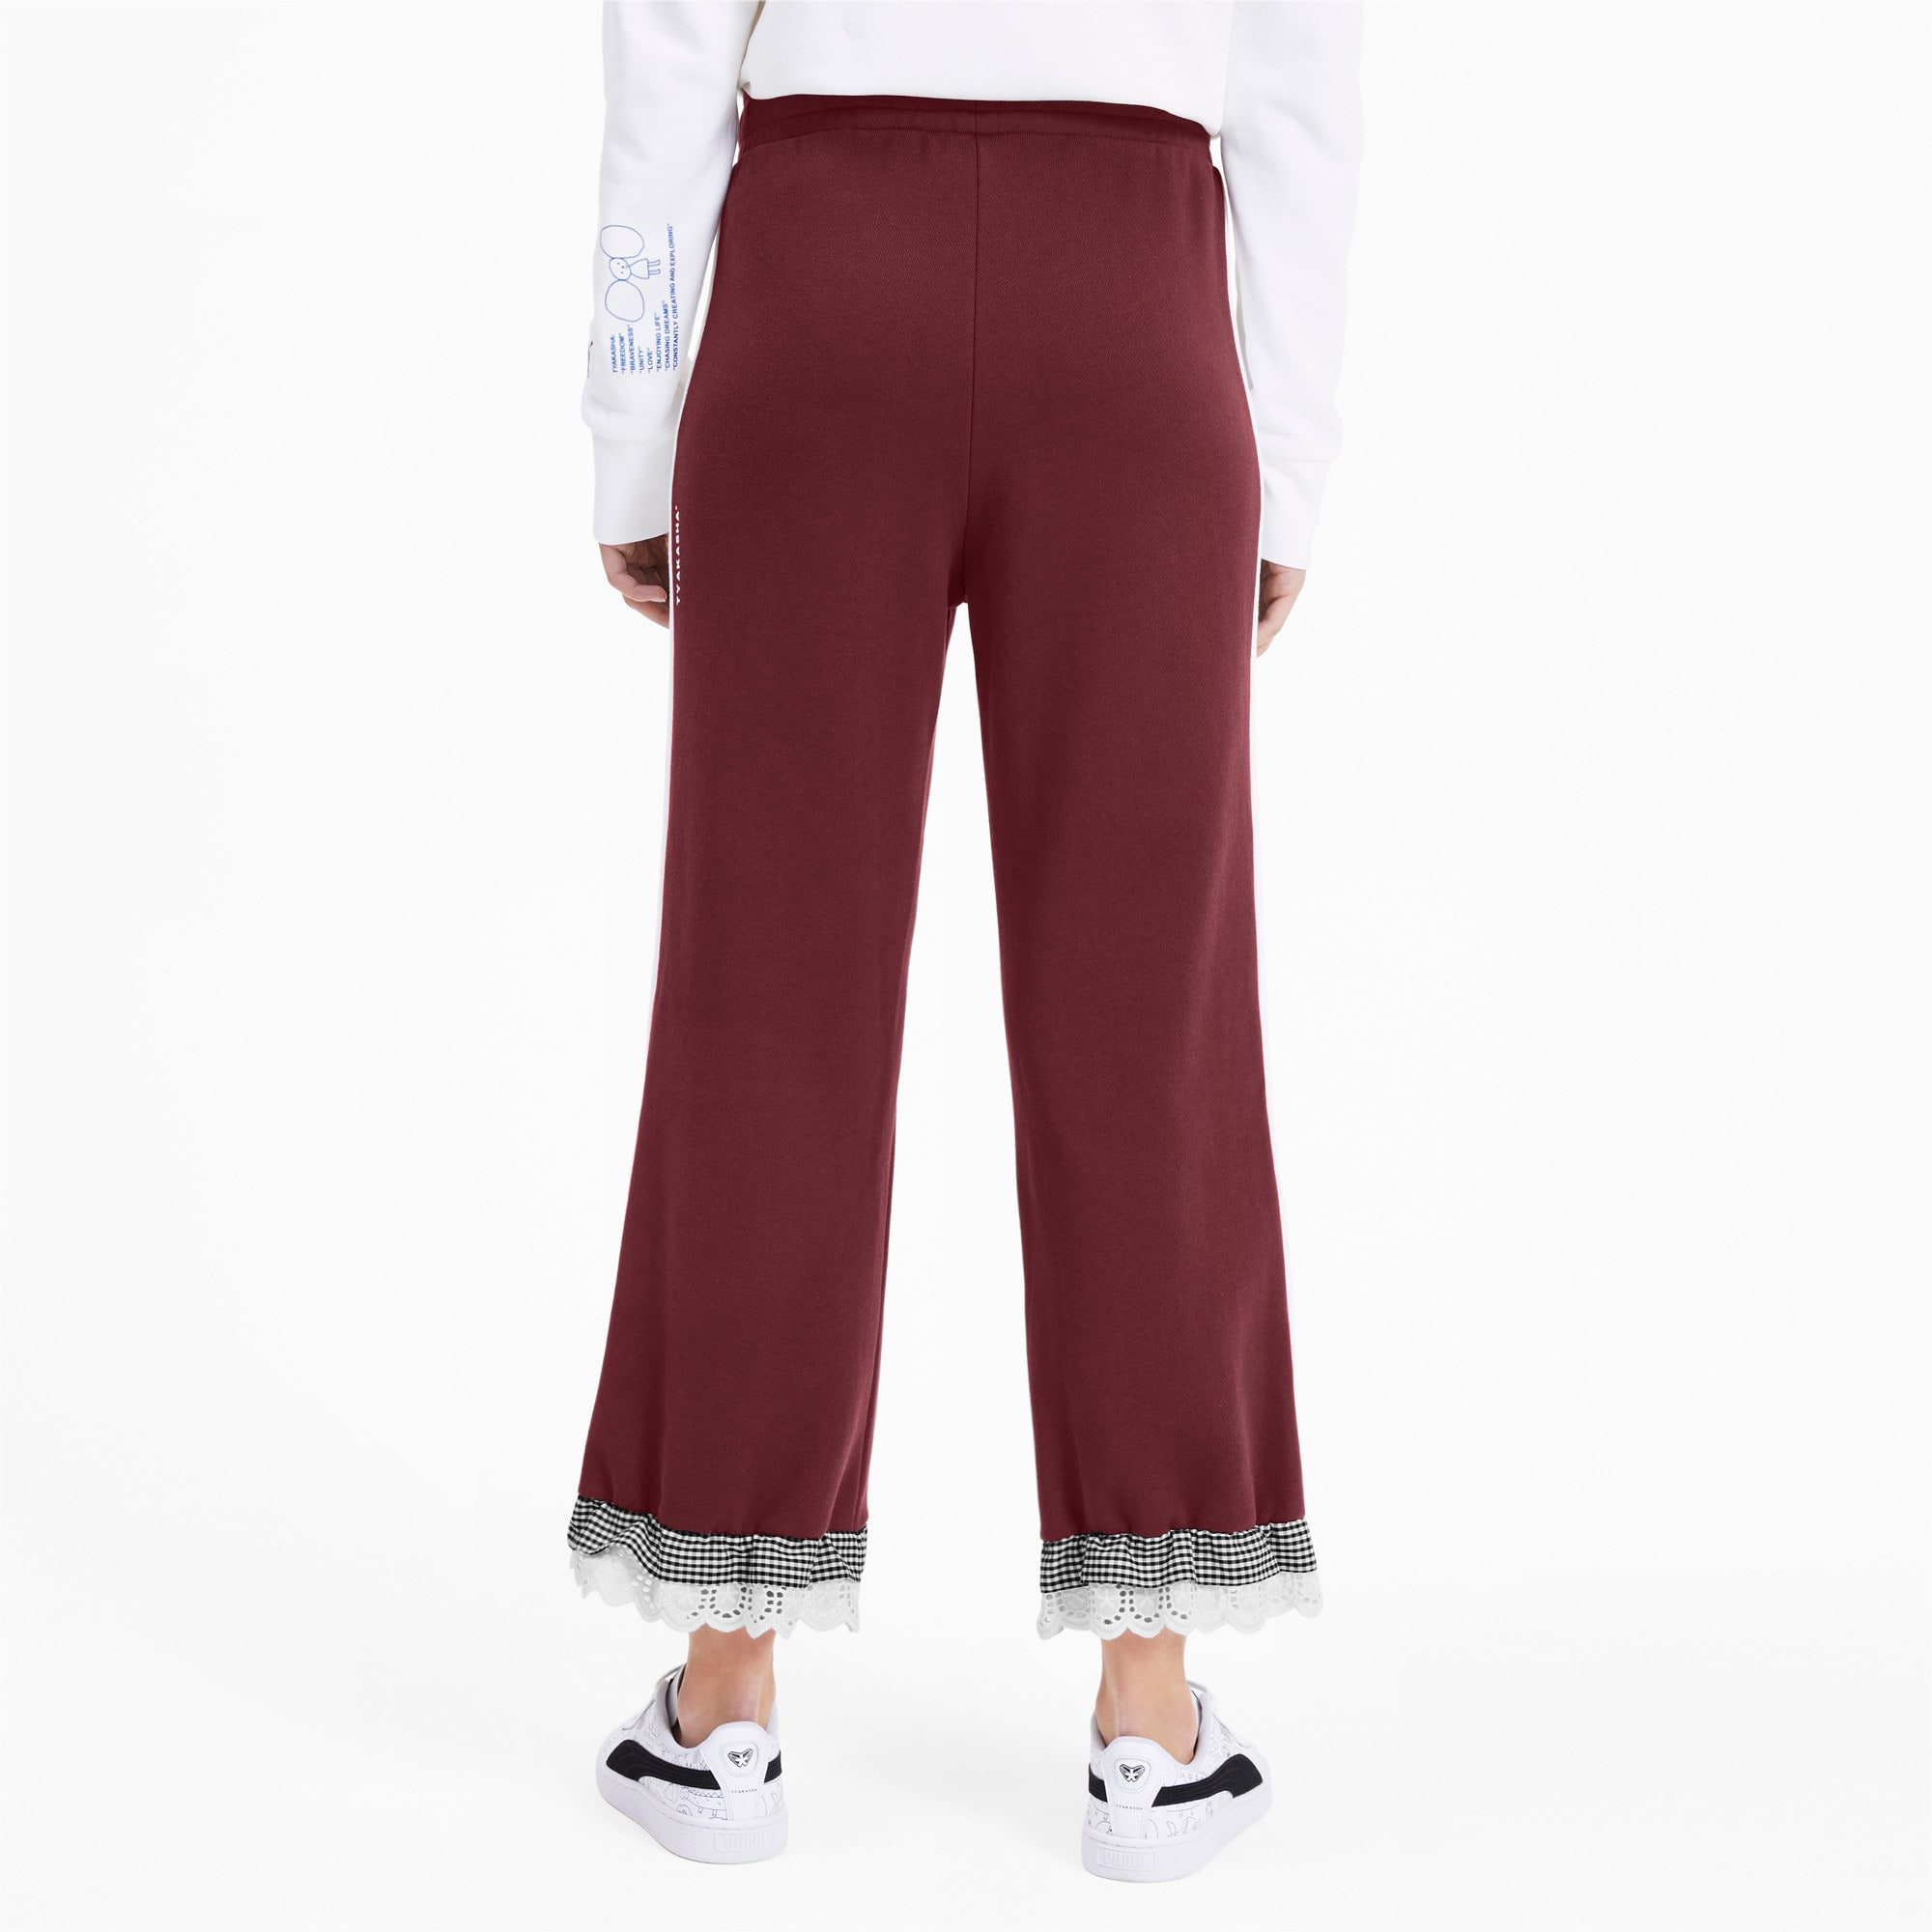 Thumbnail 3 of PUMA x TYAKASHA Knitted Women's Culottes, Vineyard Wine, medium